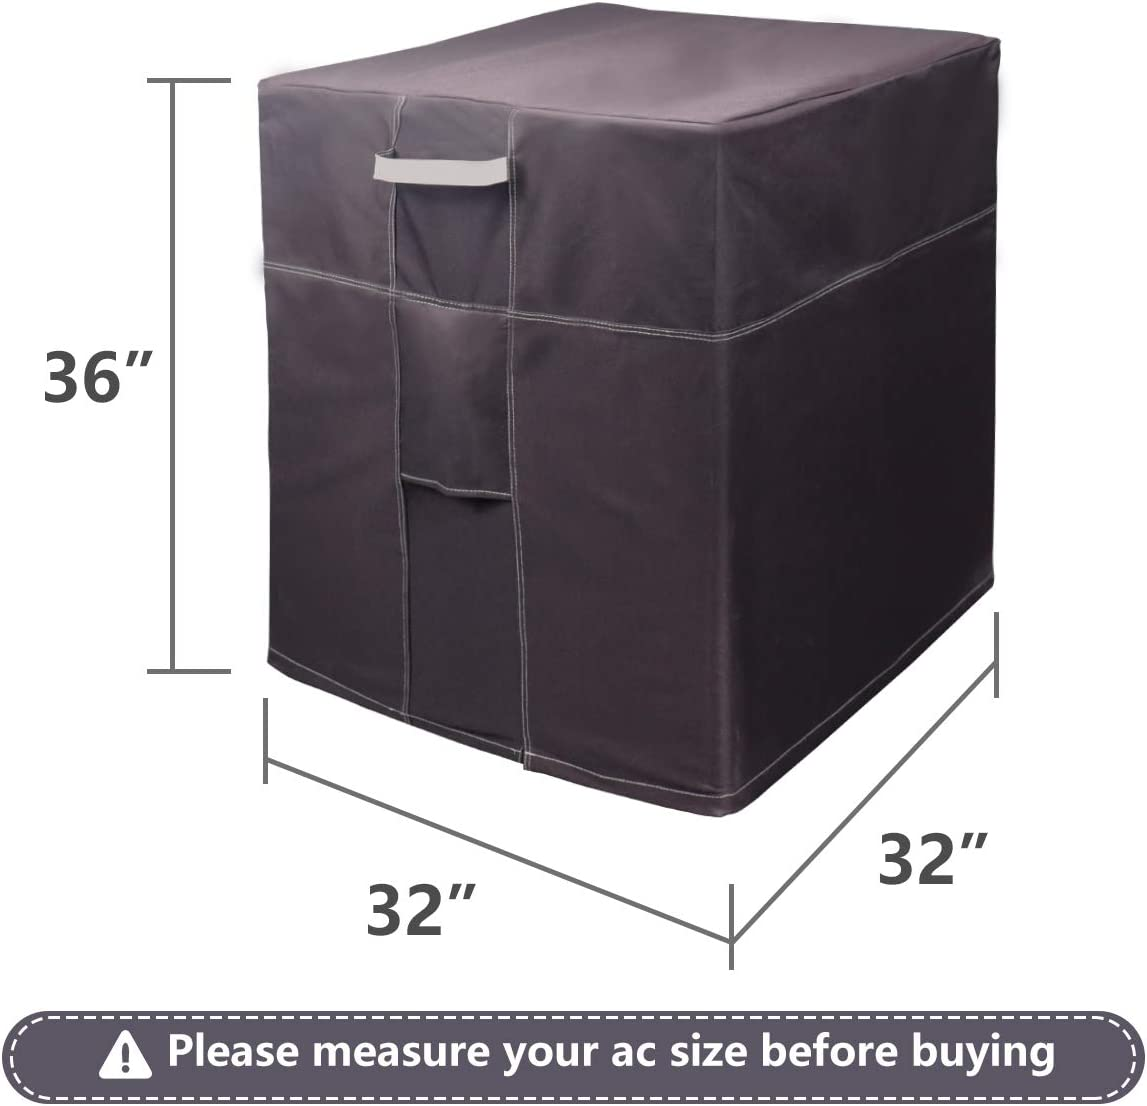 BJADES Central Air Conditioner Cover,Outside Waterproof Winter Covers for AC Units with Mesh Air Vent,Square 24L x 24W x 30H inches